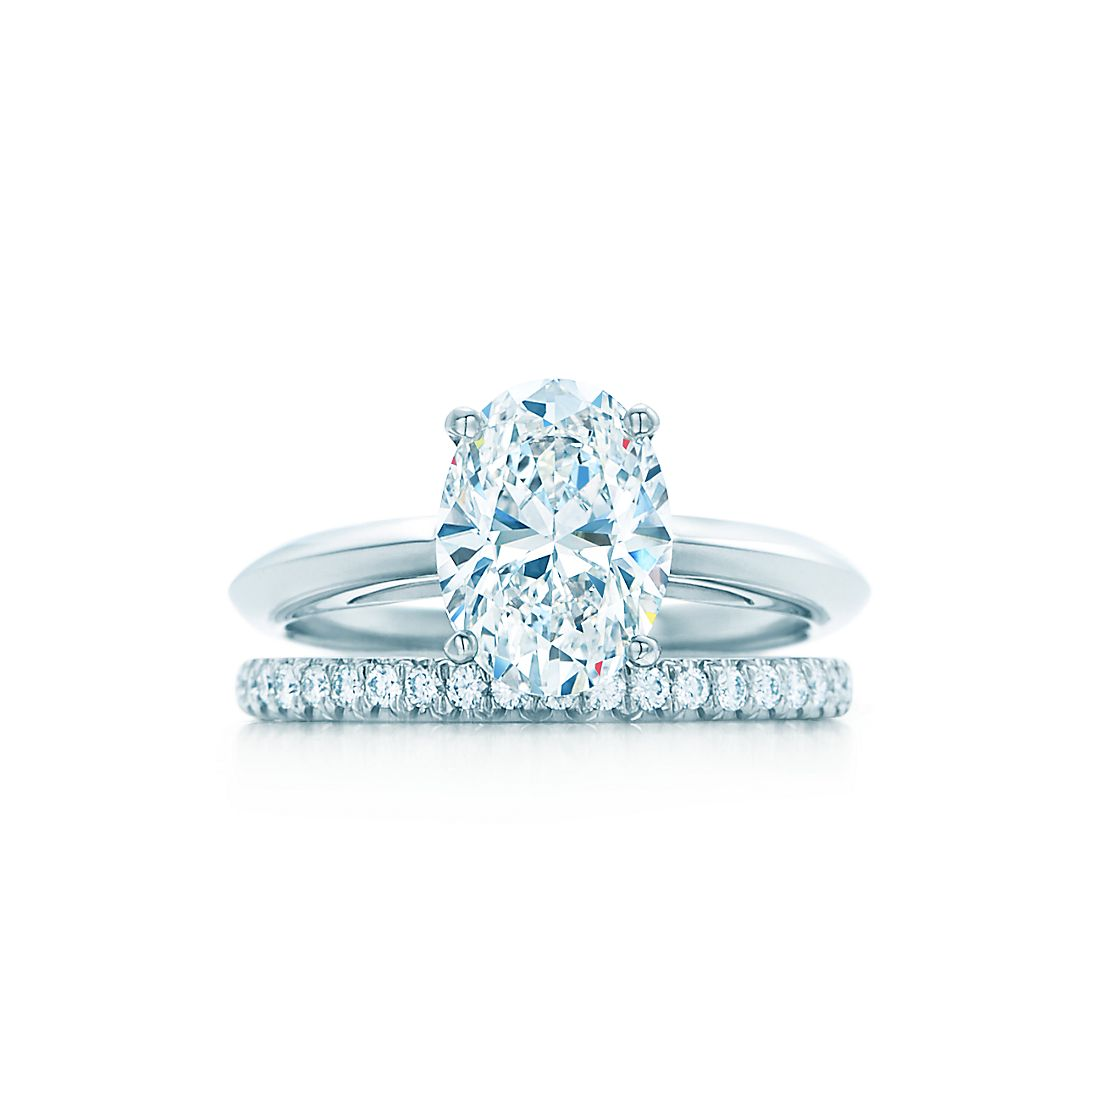 Oval Cut Diamond Engagement Rings | Tiffany & Co.